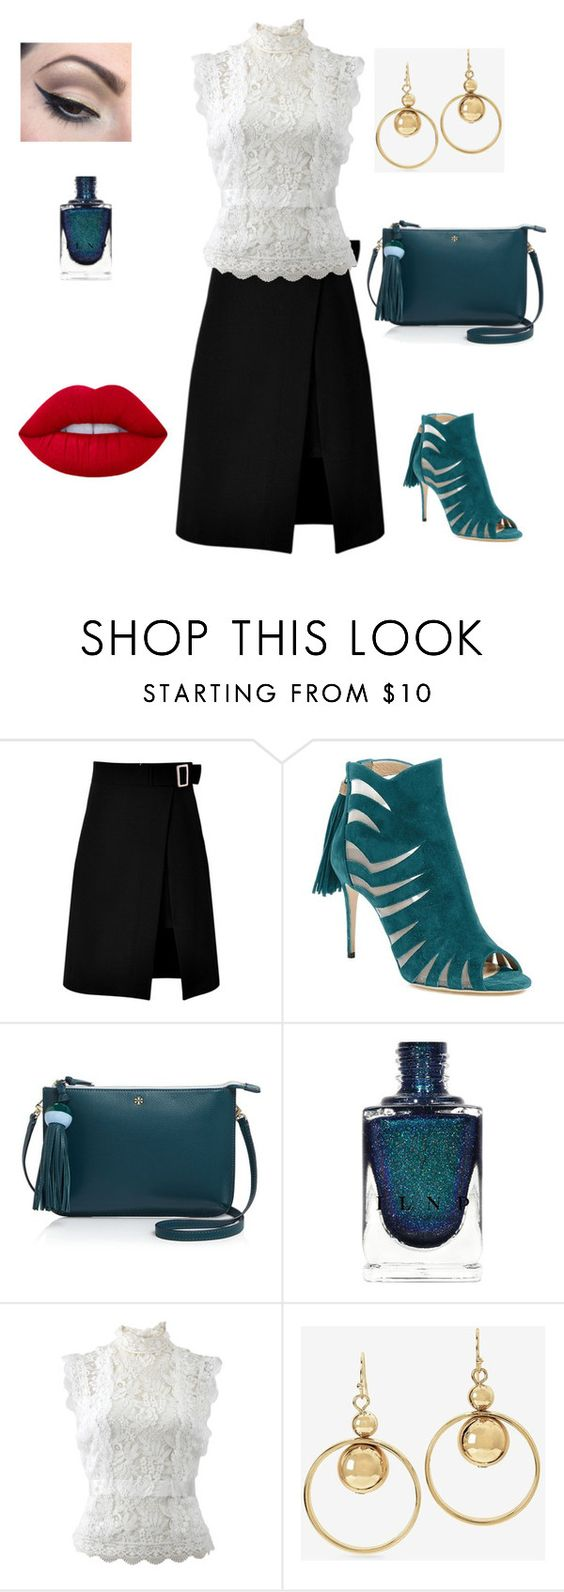 """""""Teal"""" by unpocoboho on Polyvore featuring storets, Paul Andrew, Tory Burch, Mehron, Oscar de la Renta, White House Black Market and Lime Crime"""